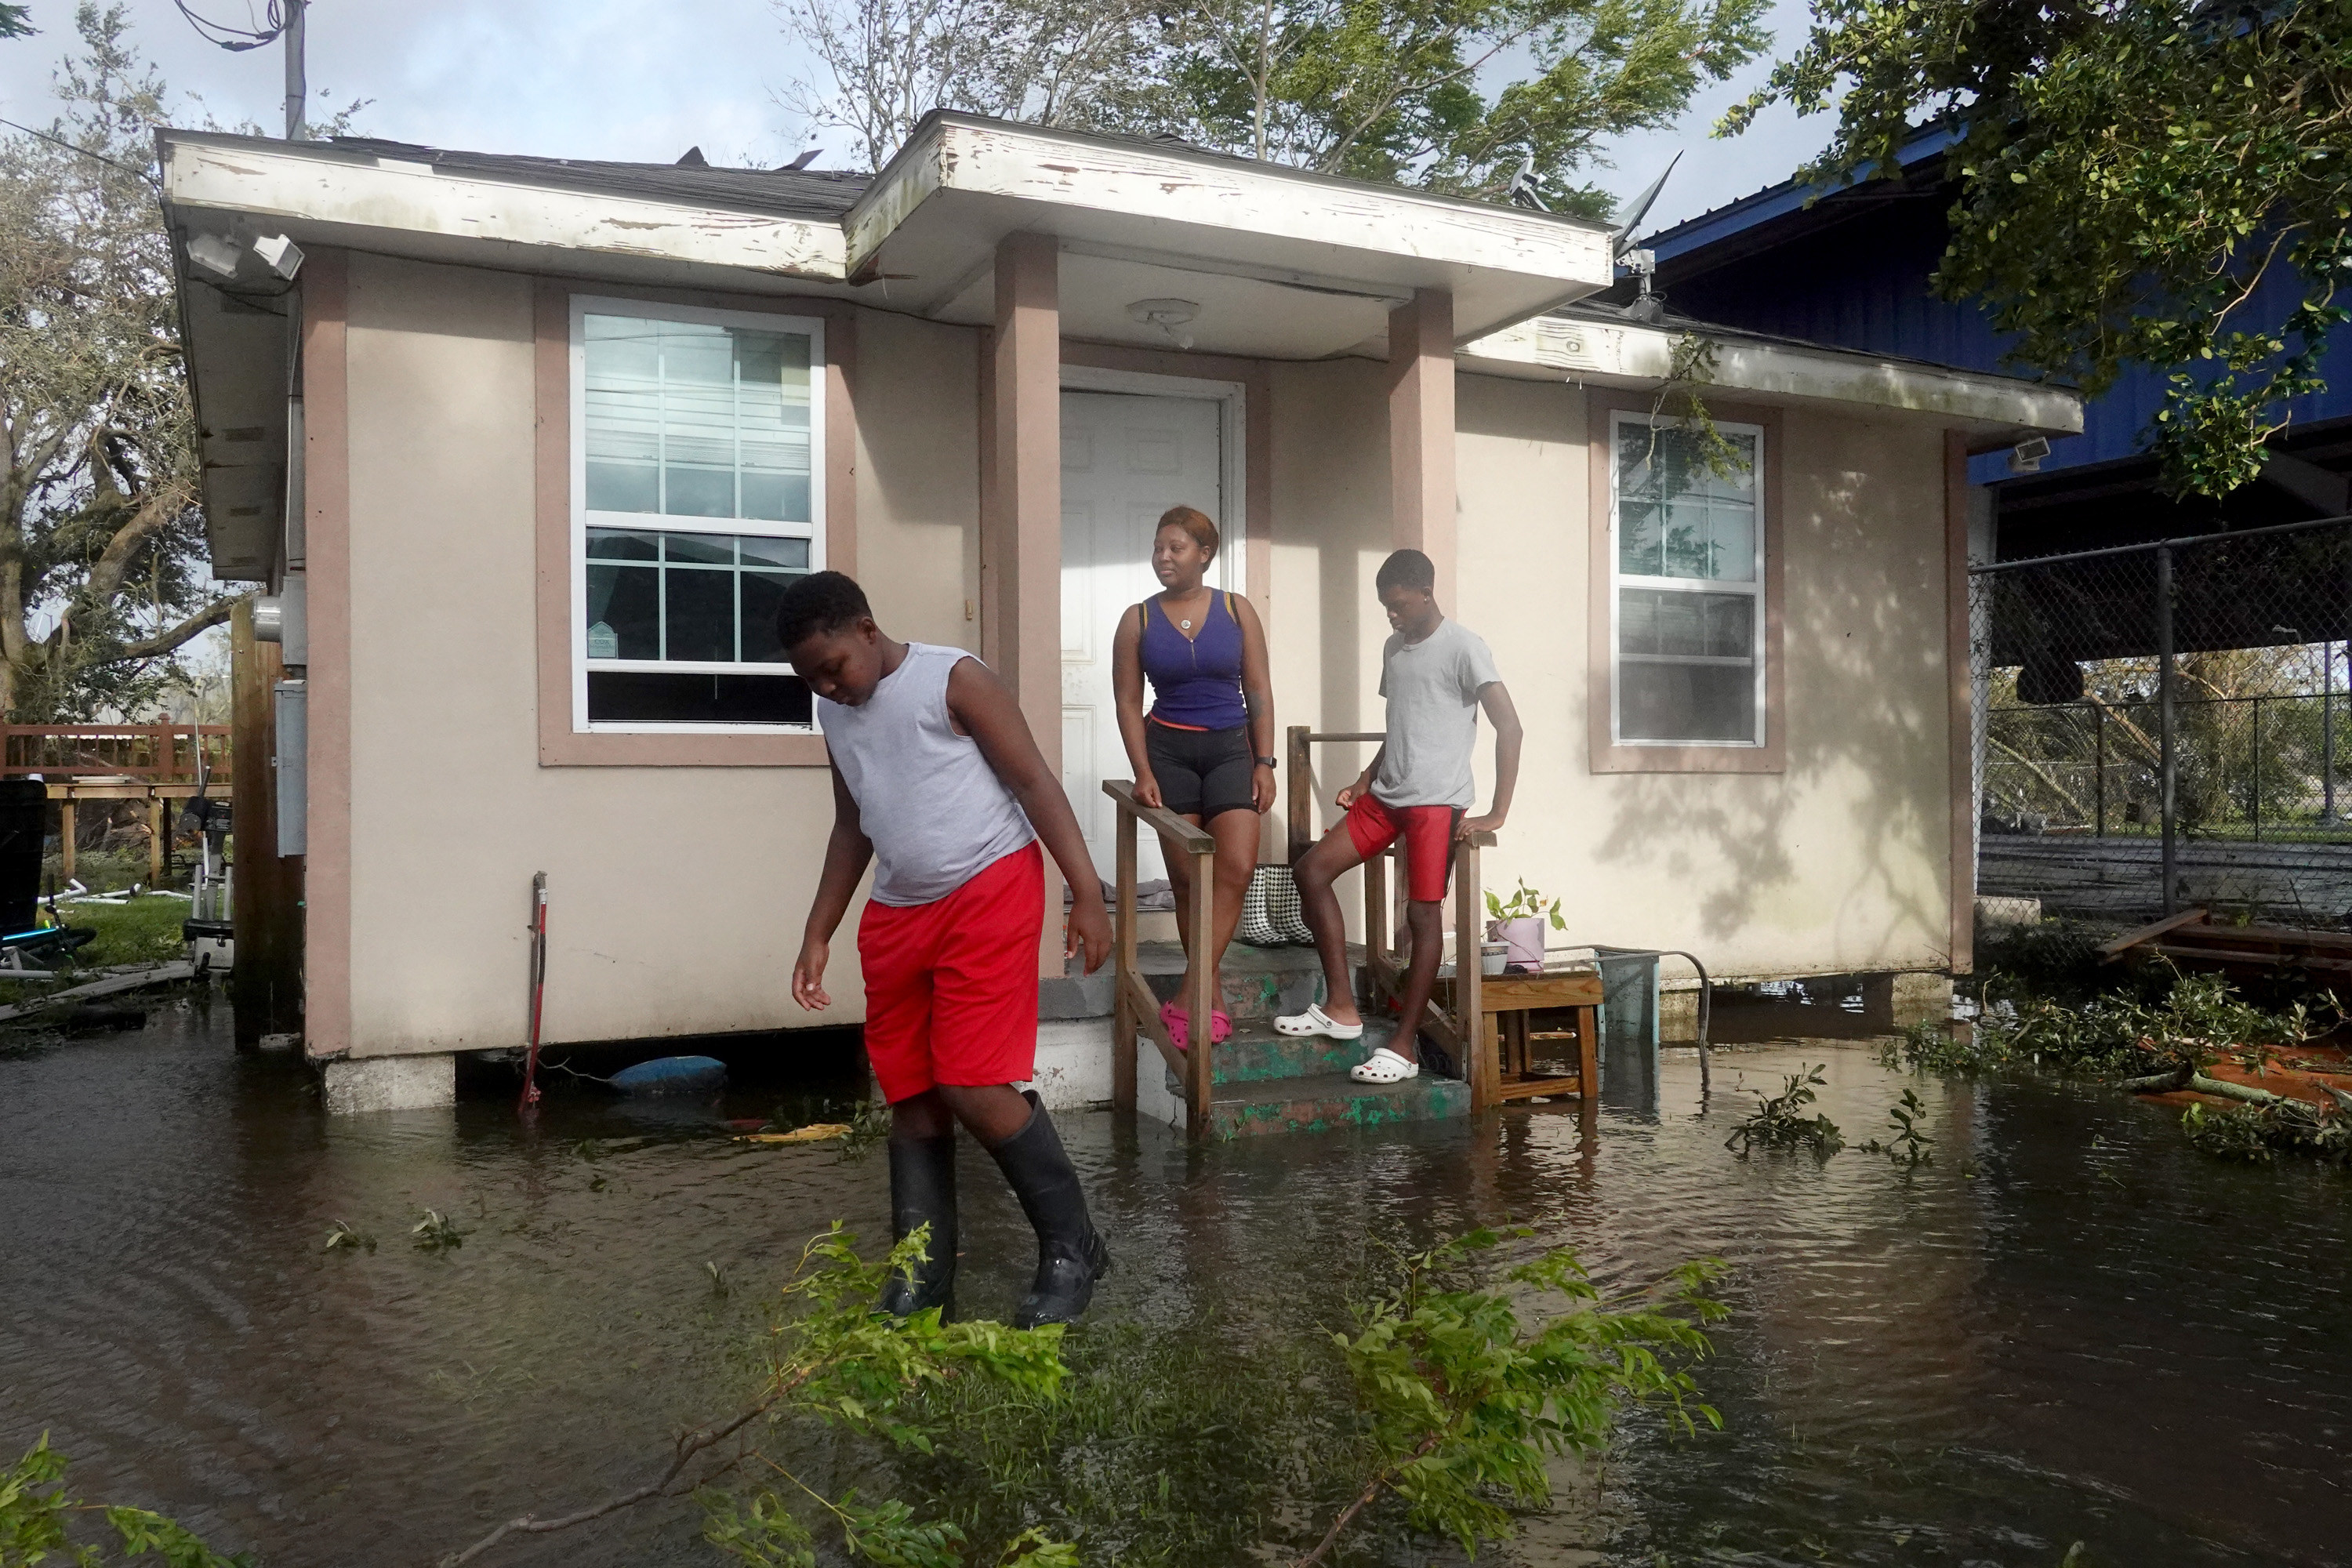 Michelle Washington and her sons Kendrick and Kayden check out damage to their home in the aftermath of Hurricane Ida